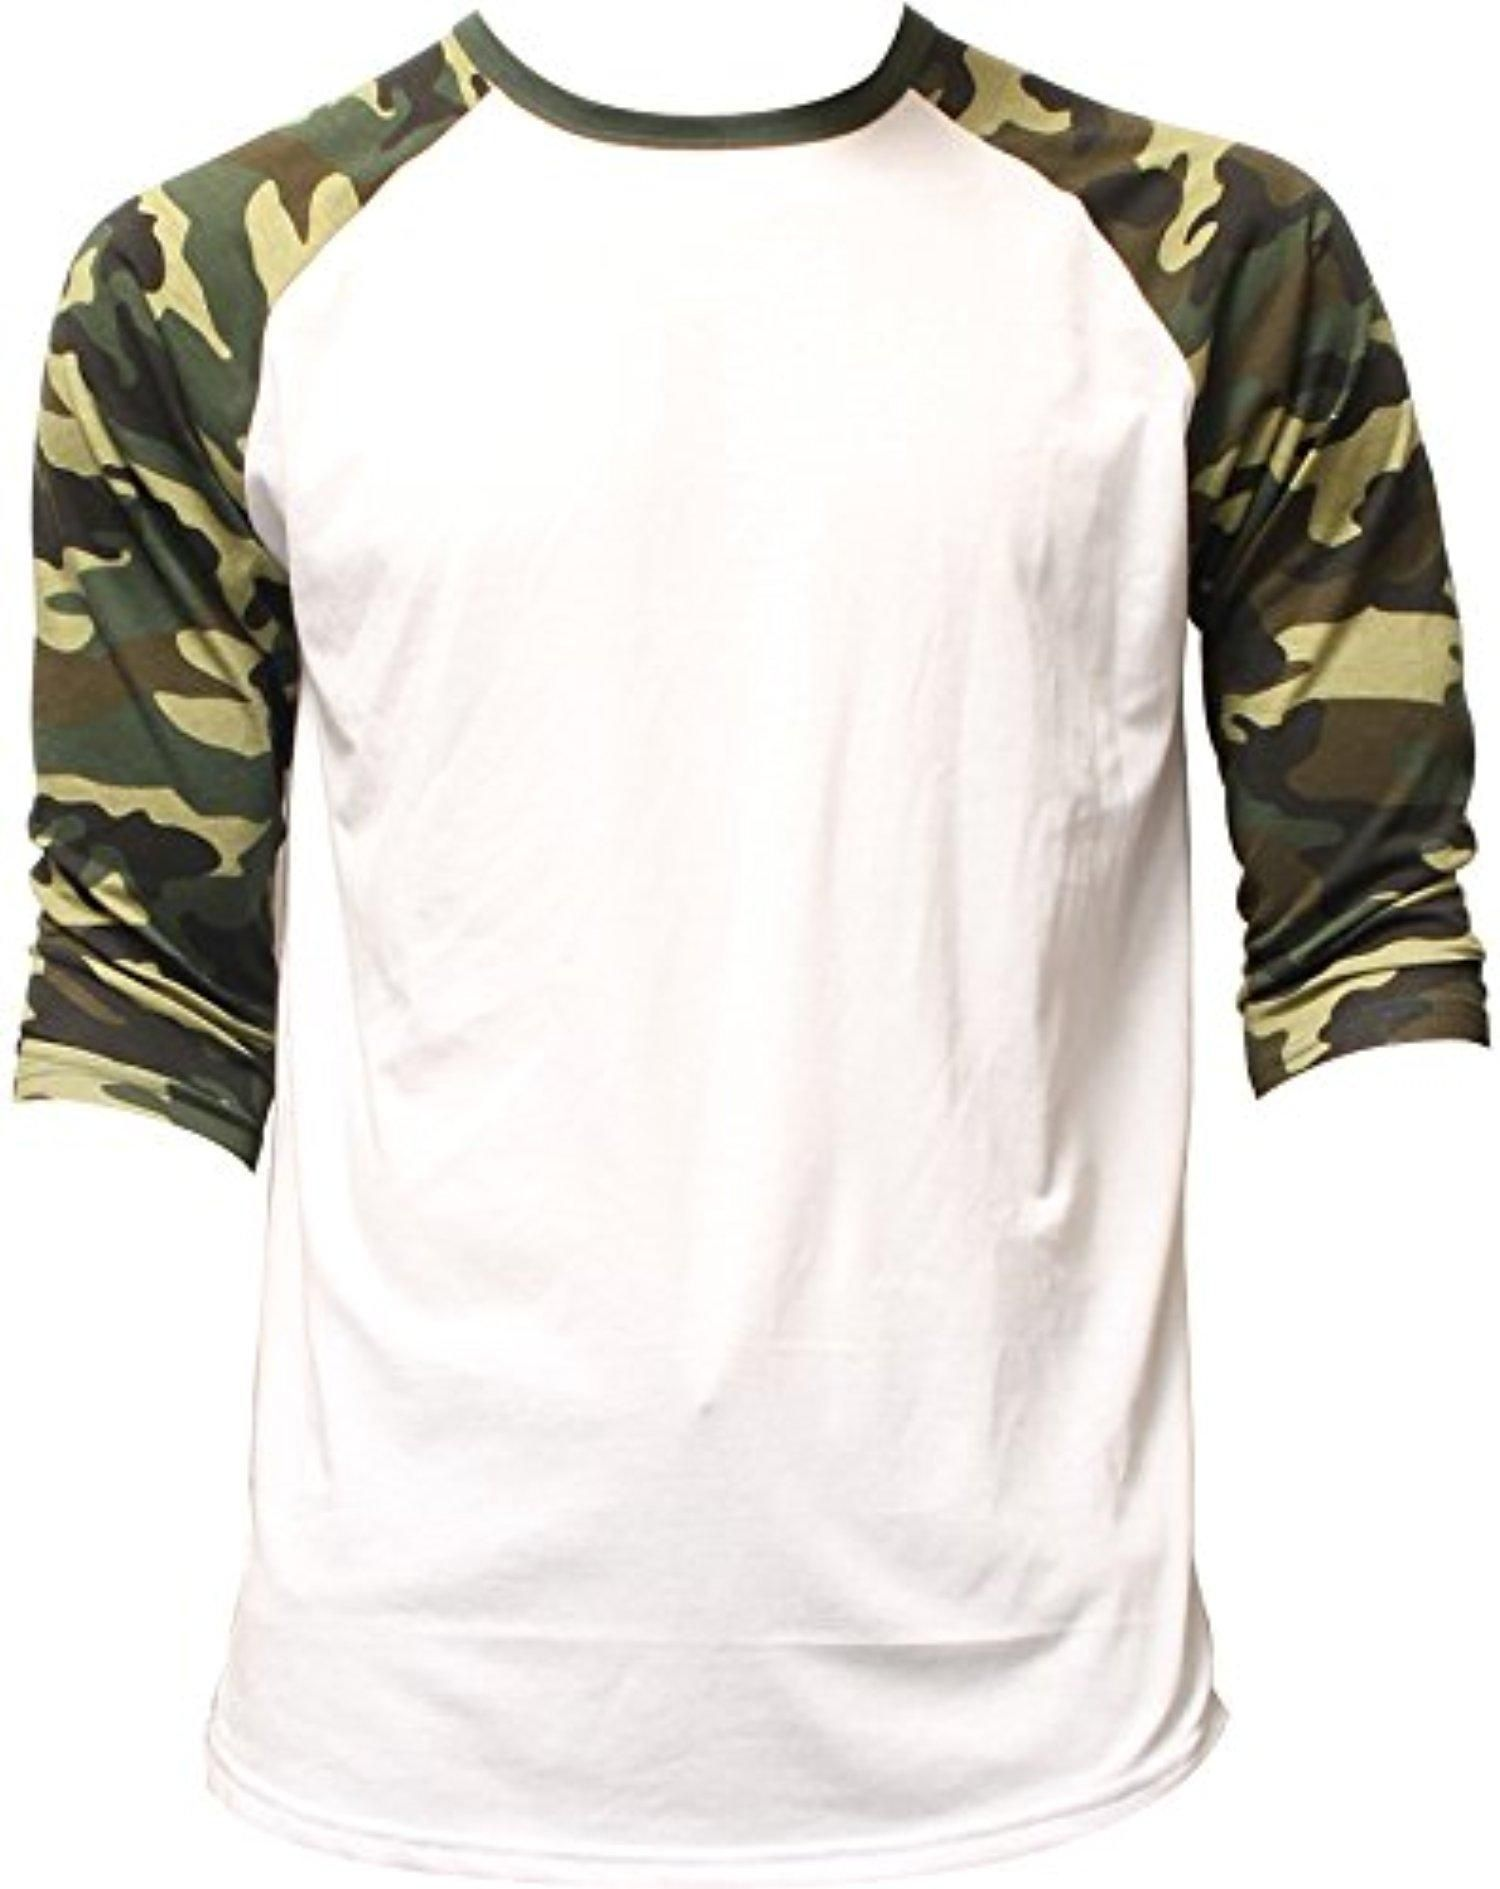 3d42d5e7 Men's Plain Athletic 3/4 Sleeve Baseball Sports T-Shirt Raglan Shirt S-XL  Team Jersey White Green Camo Large - Brought to you by Avarsha.com